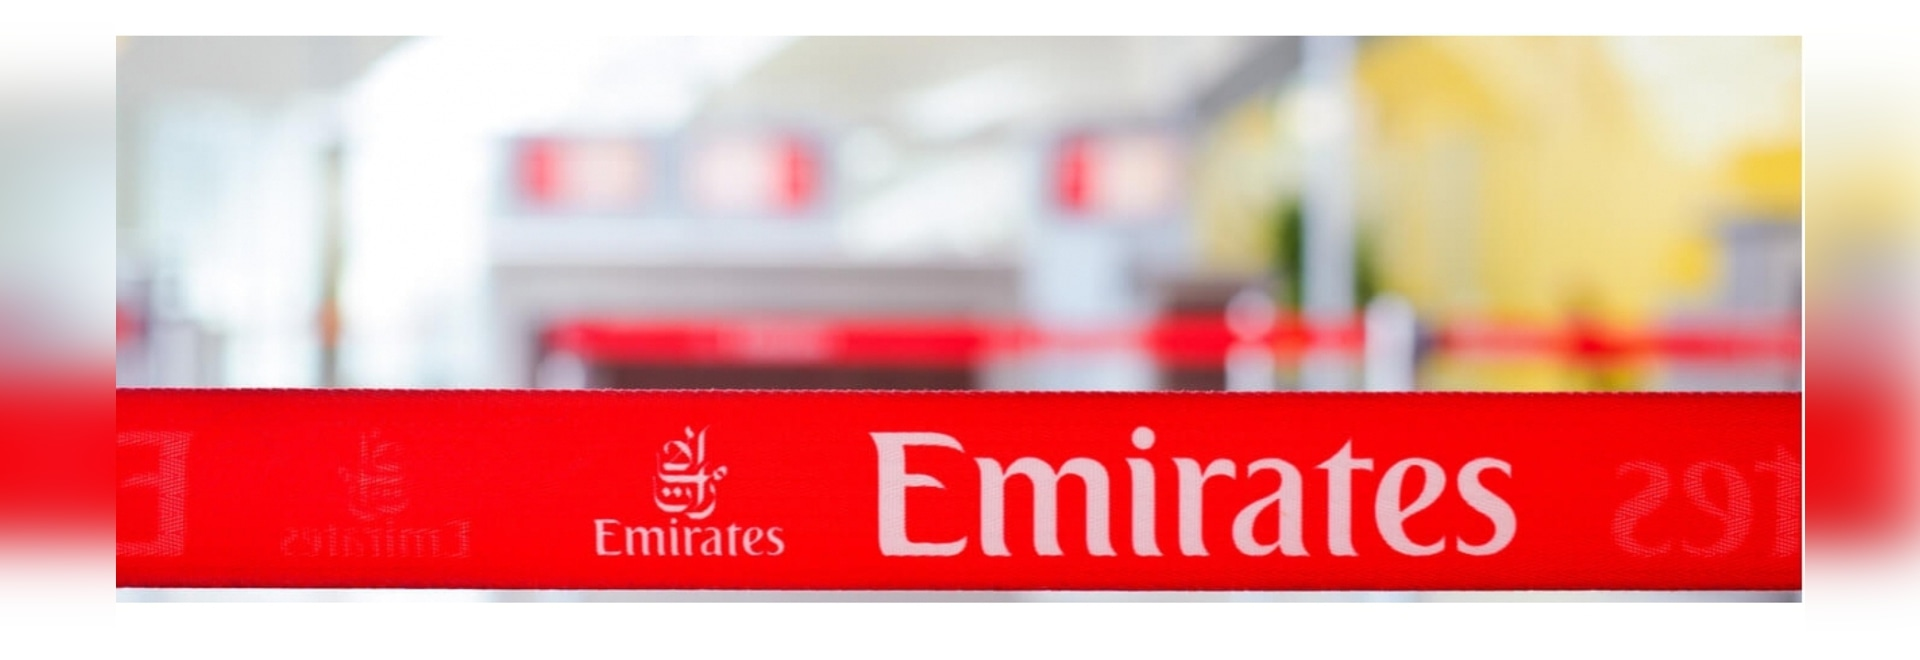 Emirates asks pilots, cabin crew to take leave